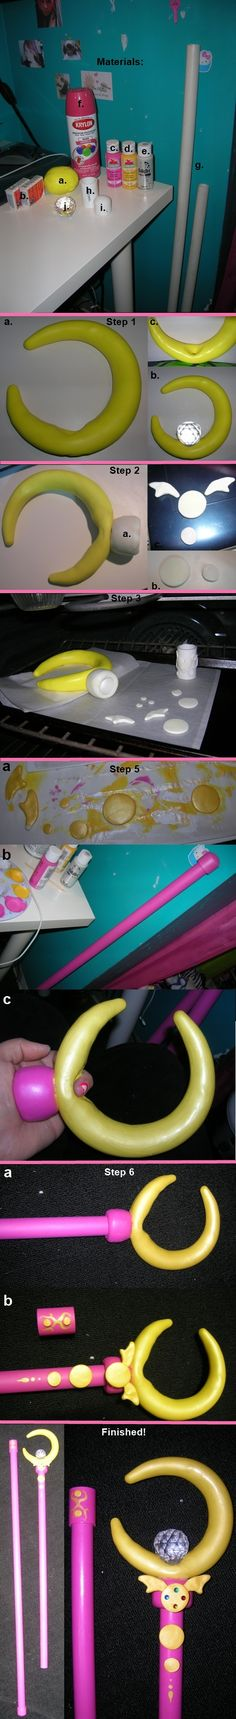 Tutorial: Sailor Moon's Wand by onesky-1destiny.deviantart.com on @deviantART